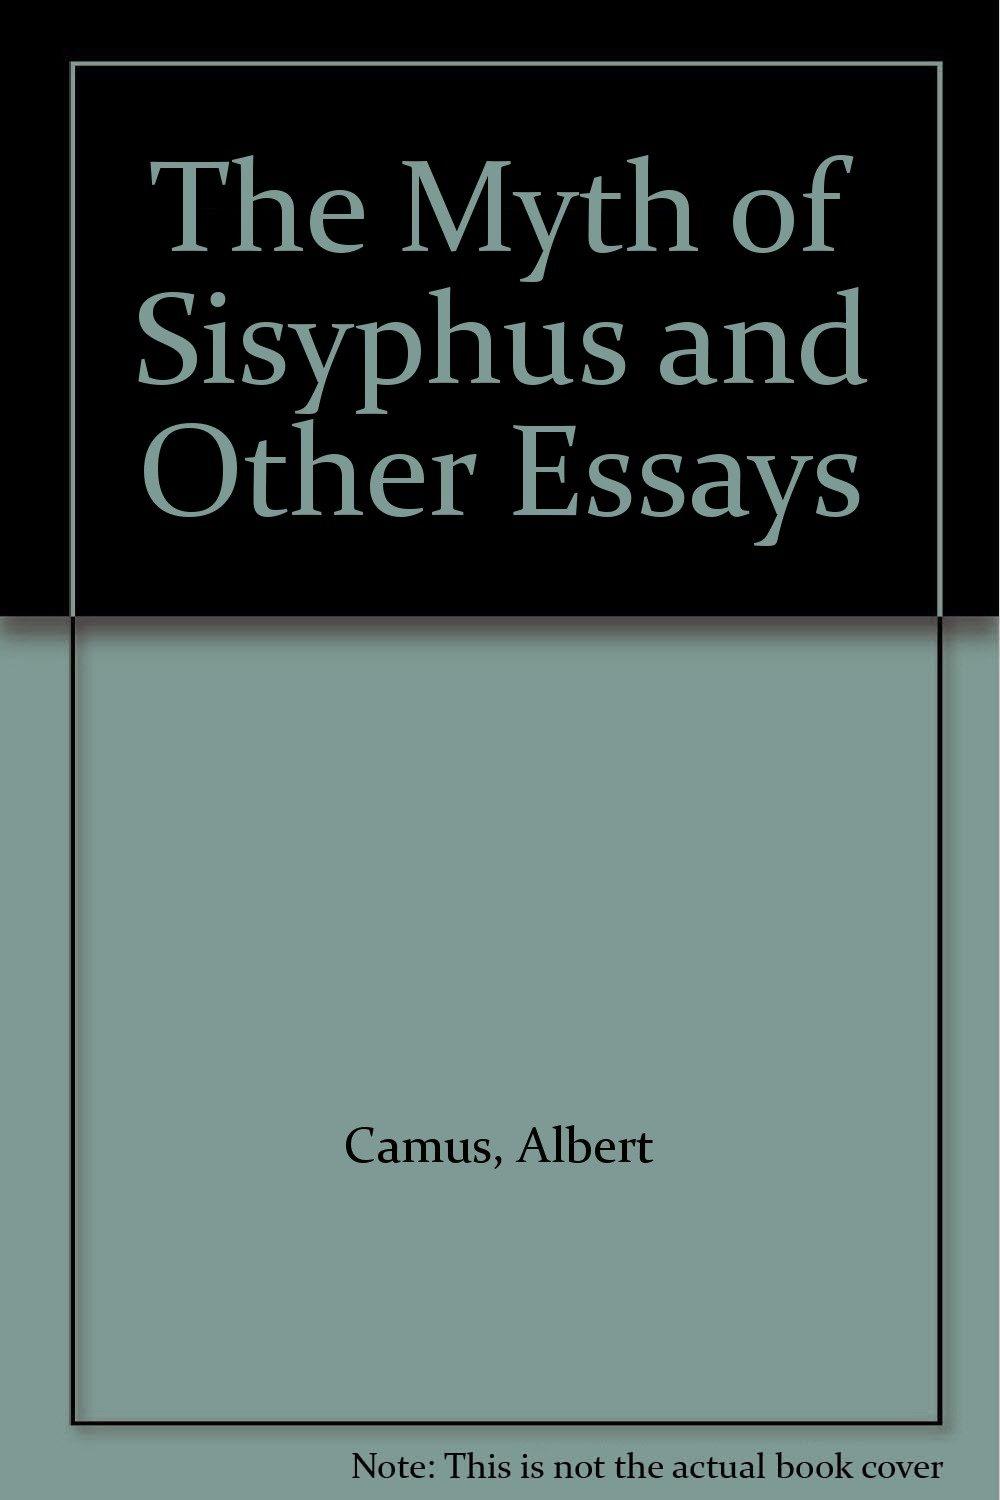 Reflective Essay Thesis  High School Persuasive Essay Topics also College Vs High School Essay Compare And Contrast The Myth Of Sisyphus And Other Essays Albert Camus Amazoncom Books Sample Essays High School